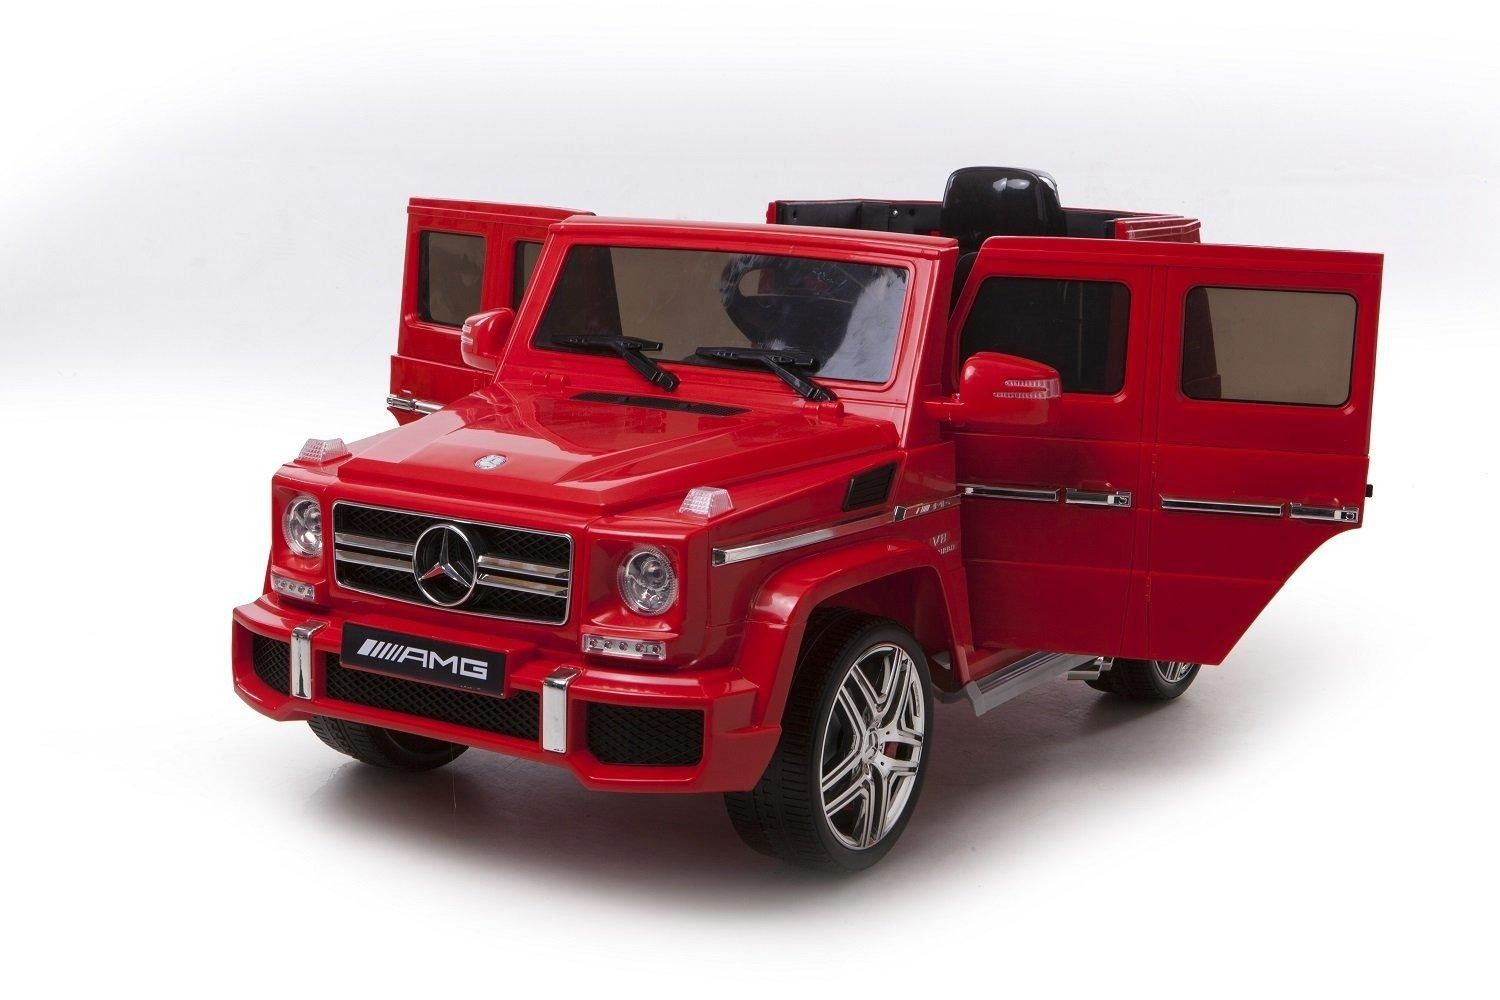 Jeep toys images  Mercedes v Electric Ride On Jeep G AMG SUV  Red Just